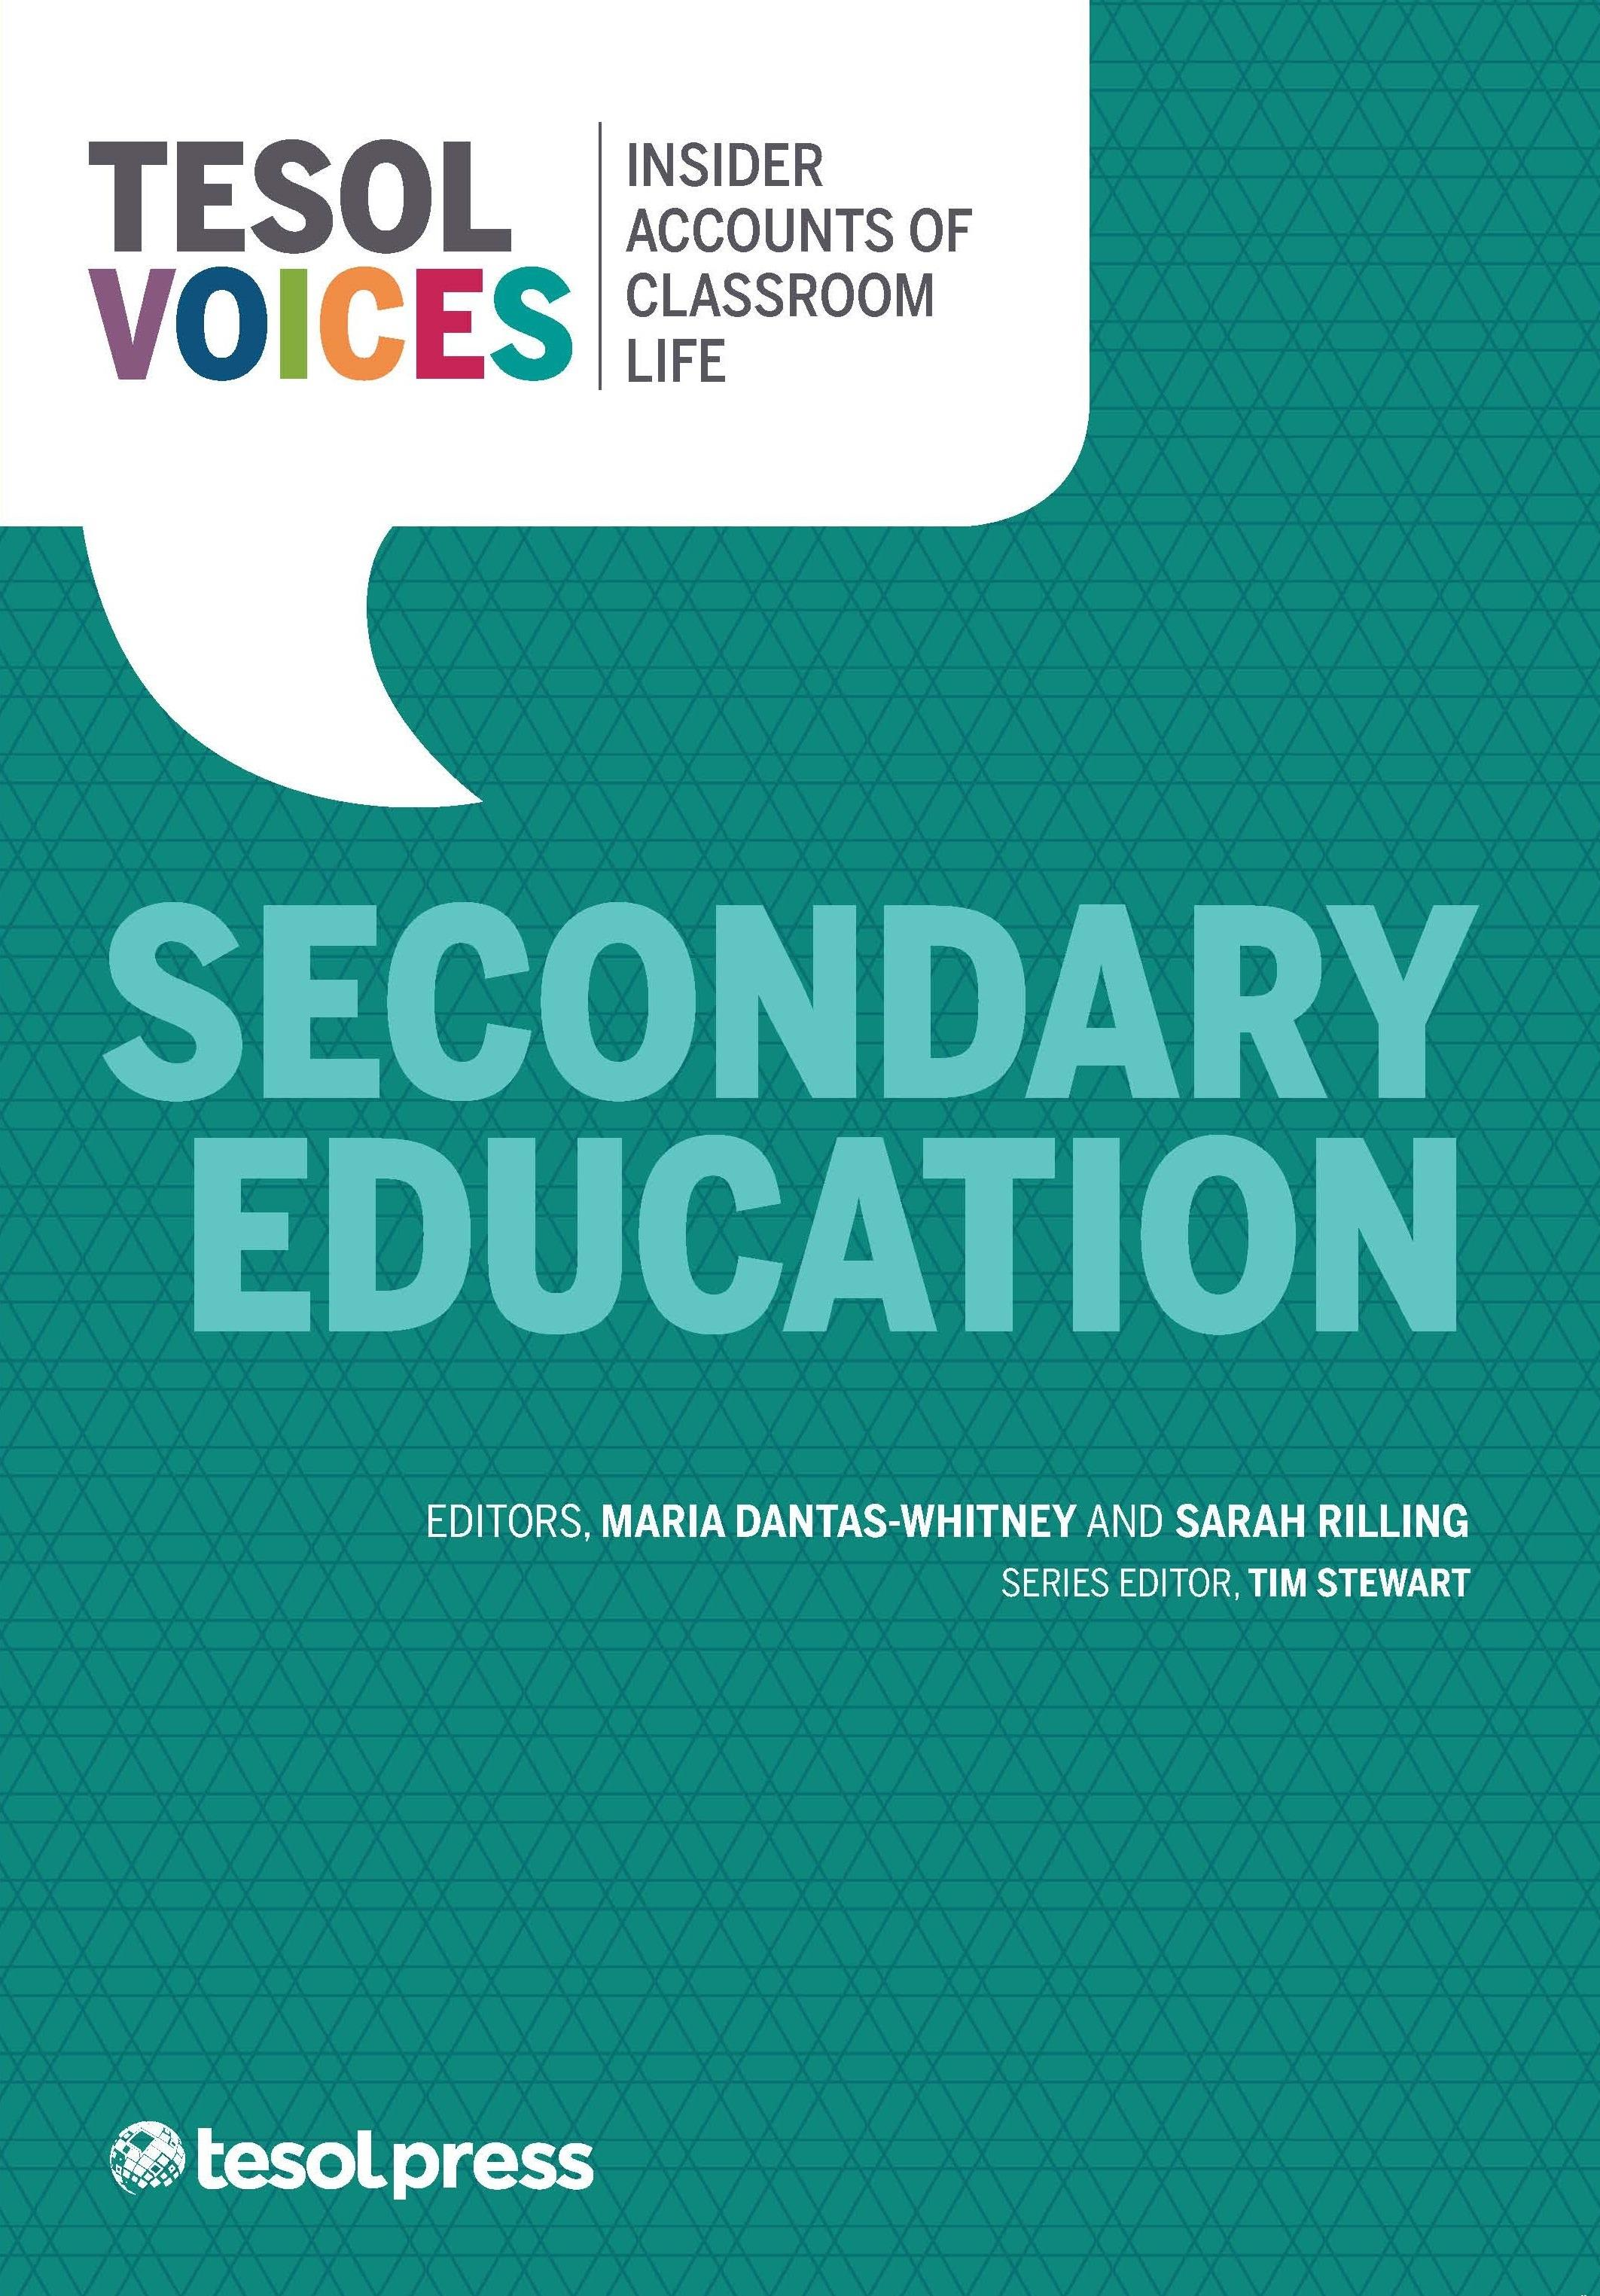 TESOL Voices: Secondary Education